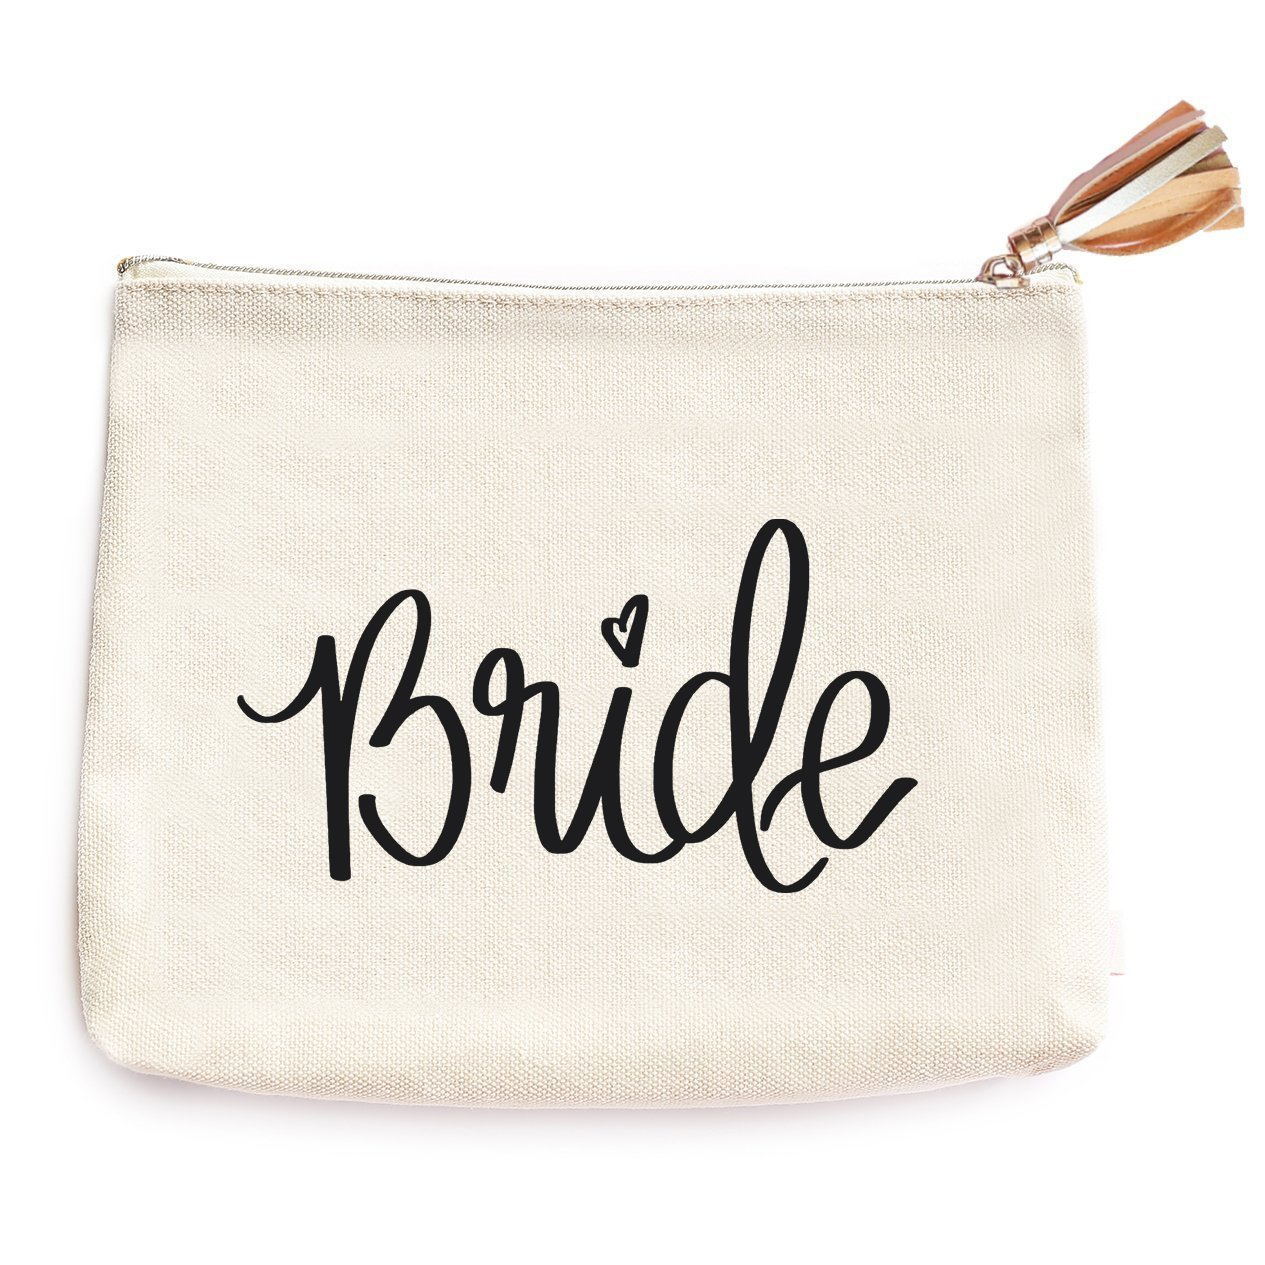 Bride Canvas Makeup Bag | Wife Accessories Miss To Mrs Make-Up Holder Cosmetic Organizer Engagement Gift for Her Travel Toiletry Case Hand Lettered